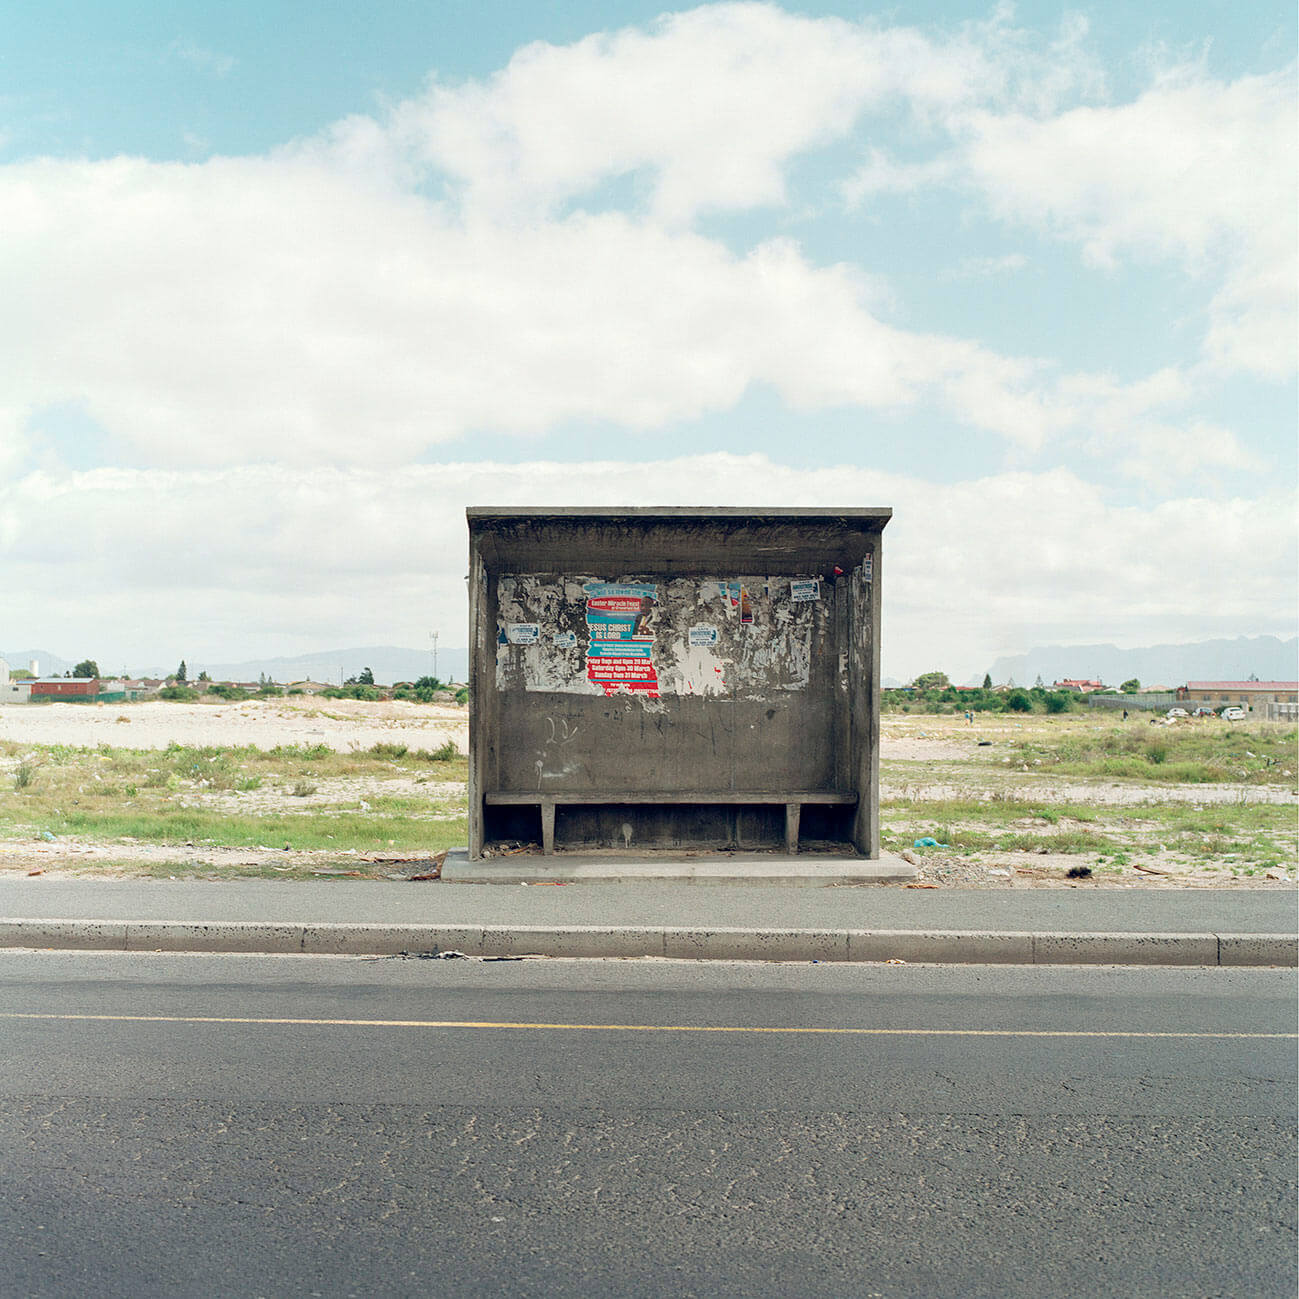 Claudio Rasano SOUTH AFRICA EVERYONE LIVE IN THE SAME PLACE LIKE BEFORE picture of a bus stop